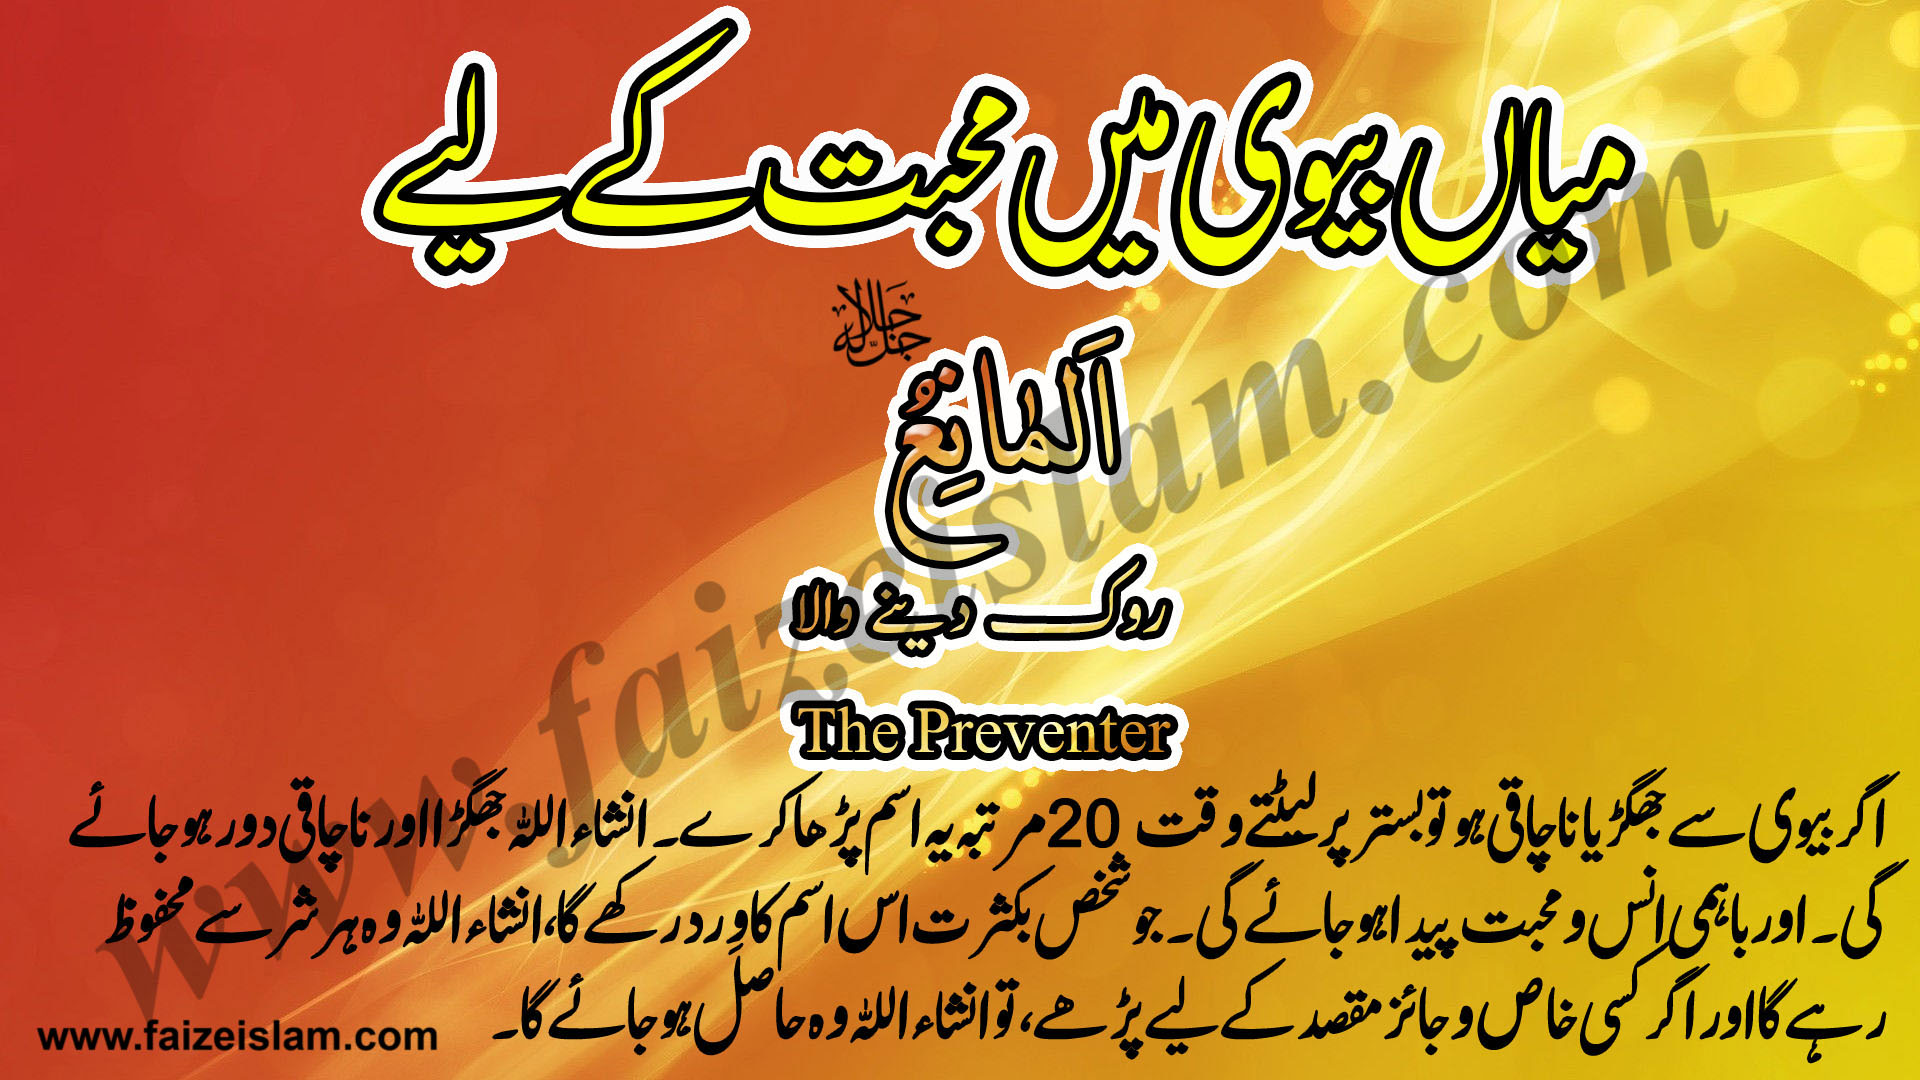 Photo of Wazifa for love husband and wife/Mian Biwi Main Muhabbat Kay Liye Wazifa In Urdu